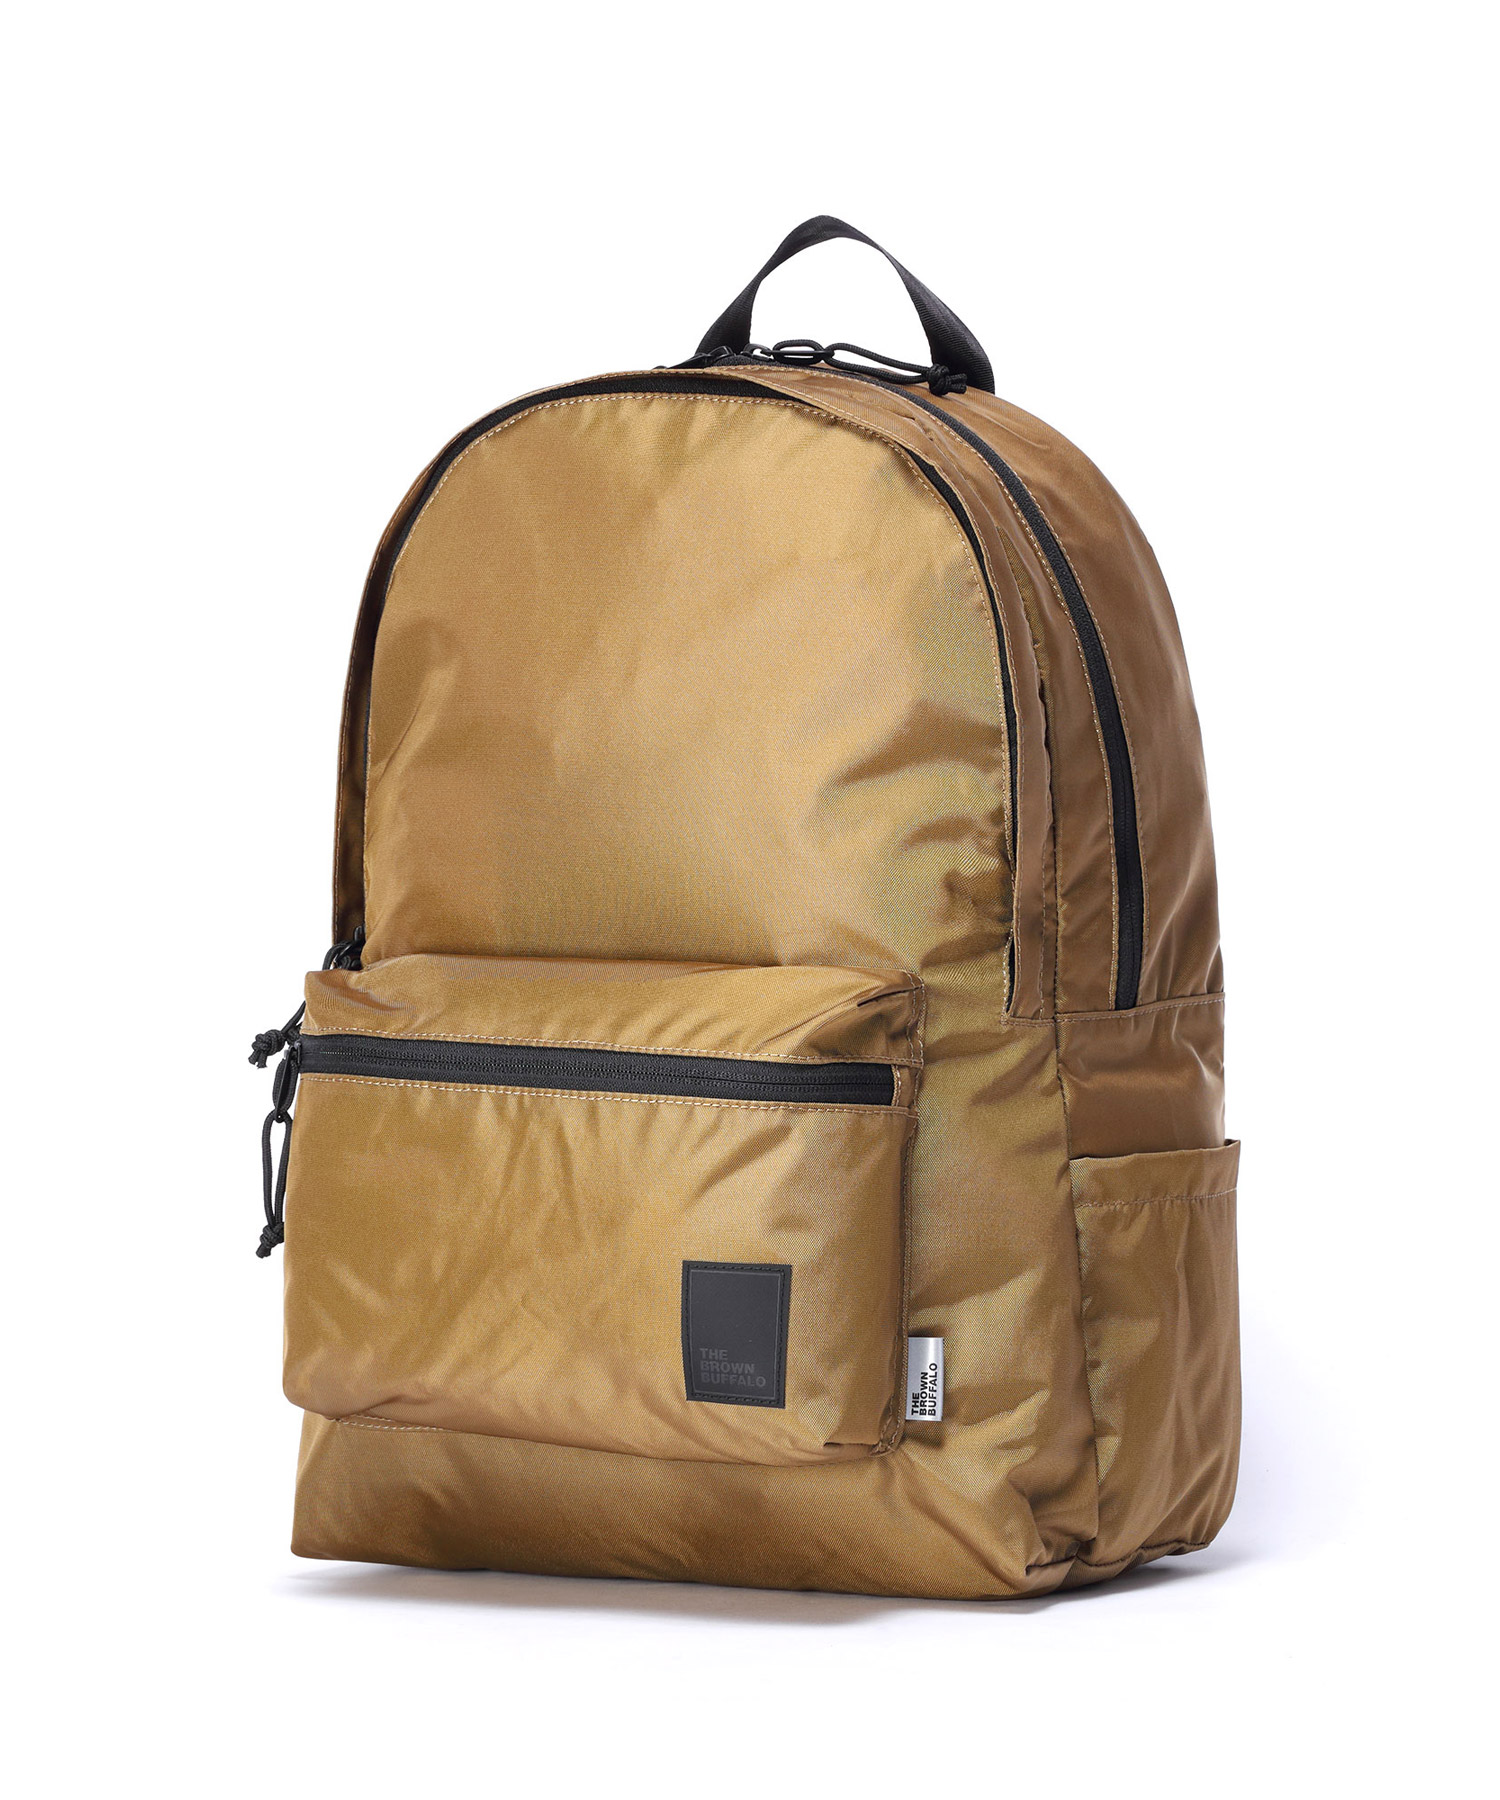 THE BROWN BUFFALO Daypack